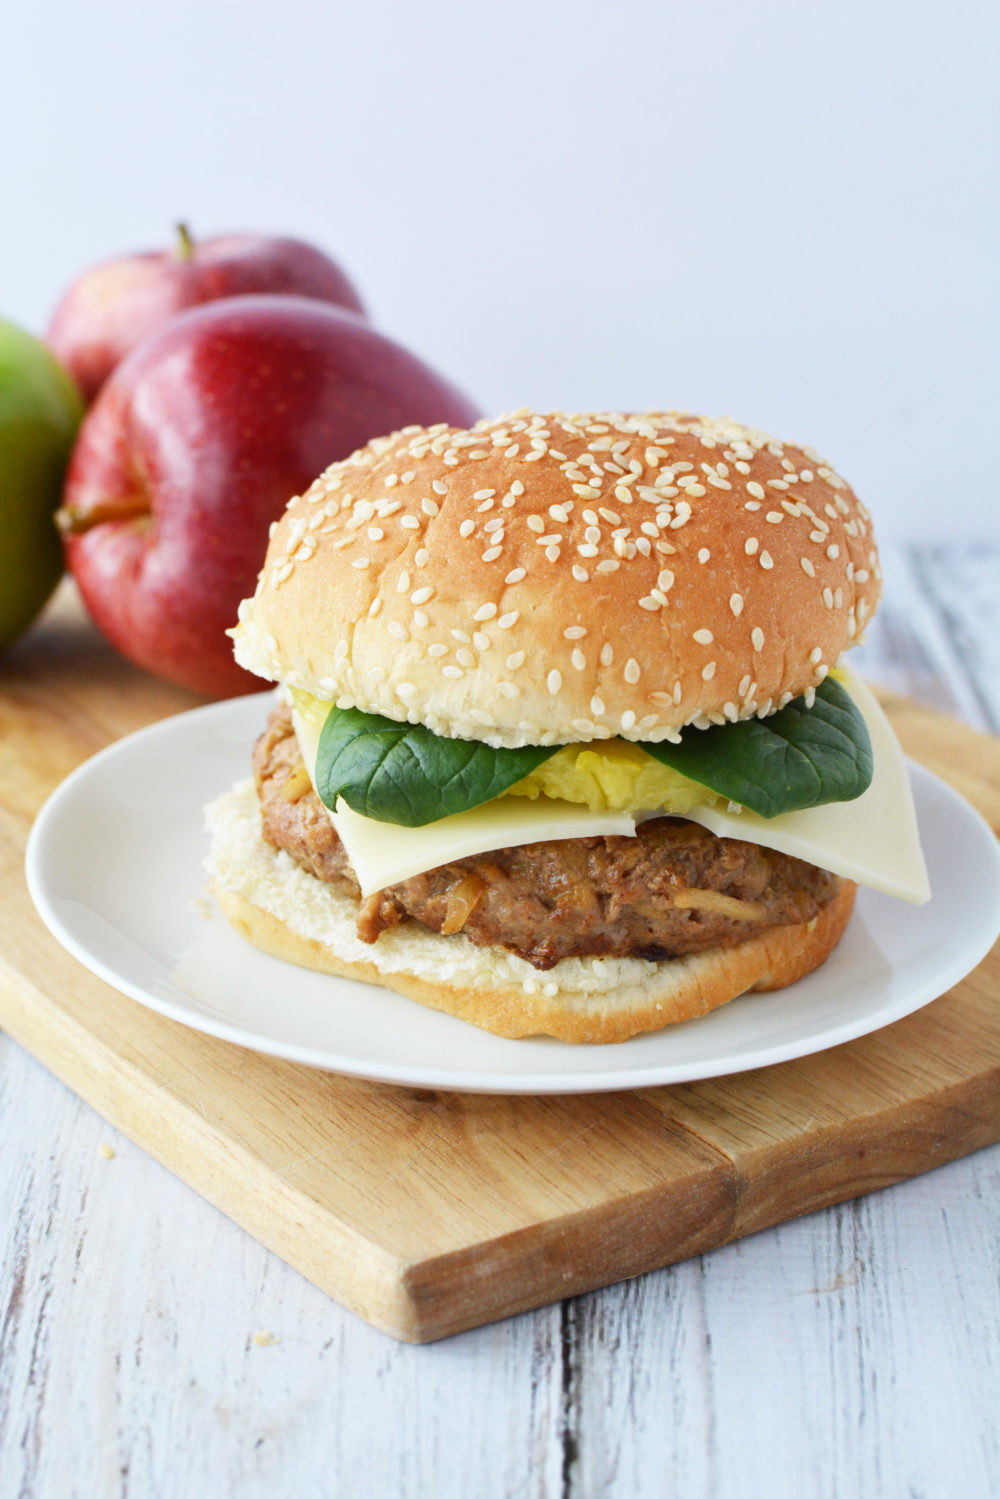 Pork and apple burger recipe with pineapple and fresh spinach